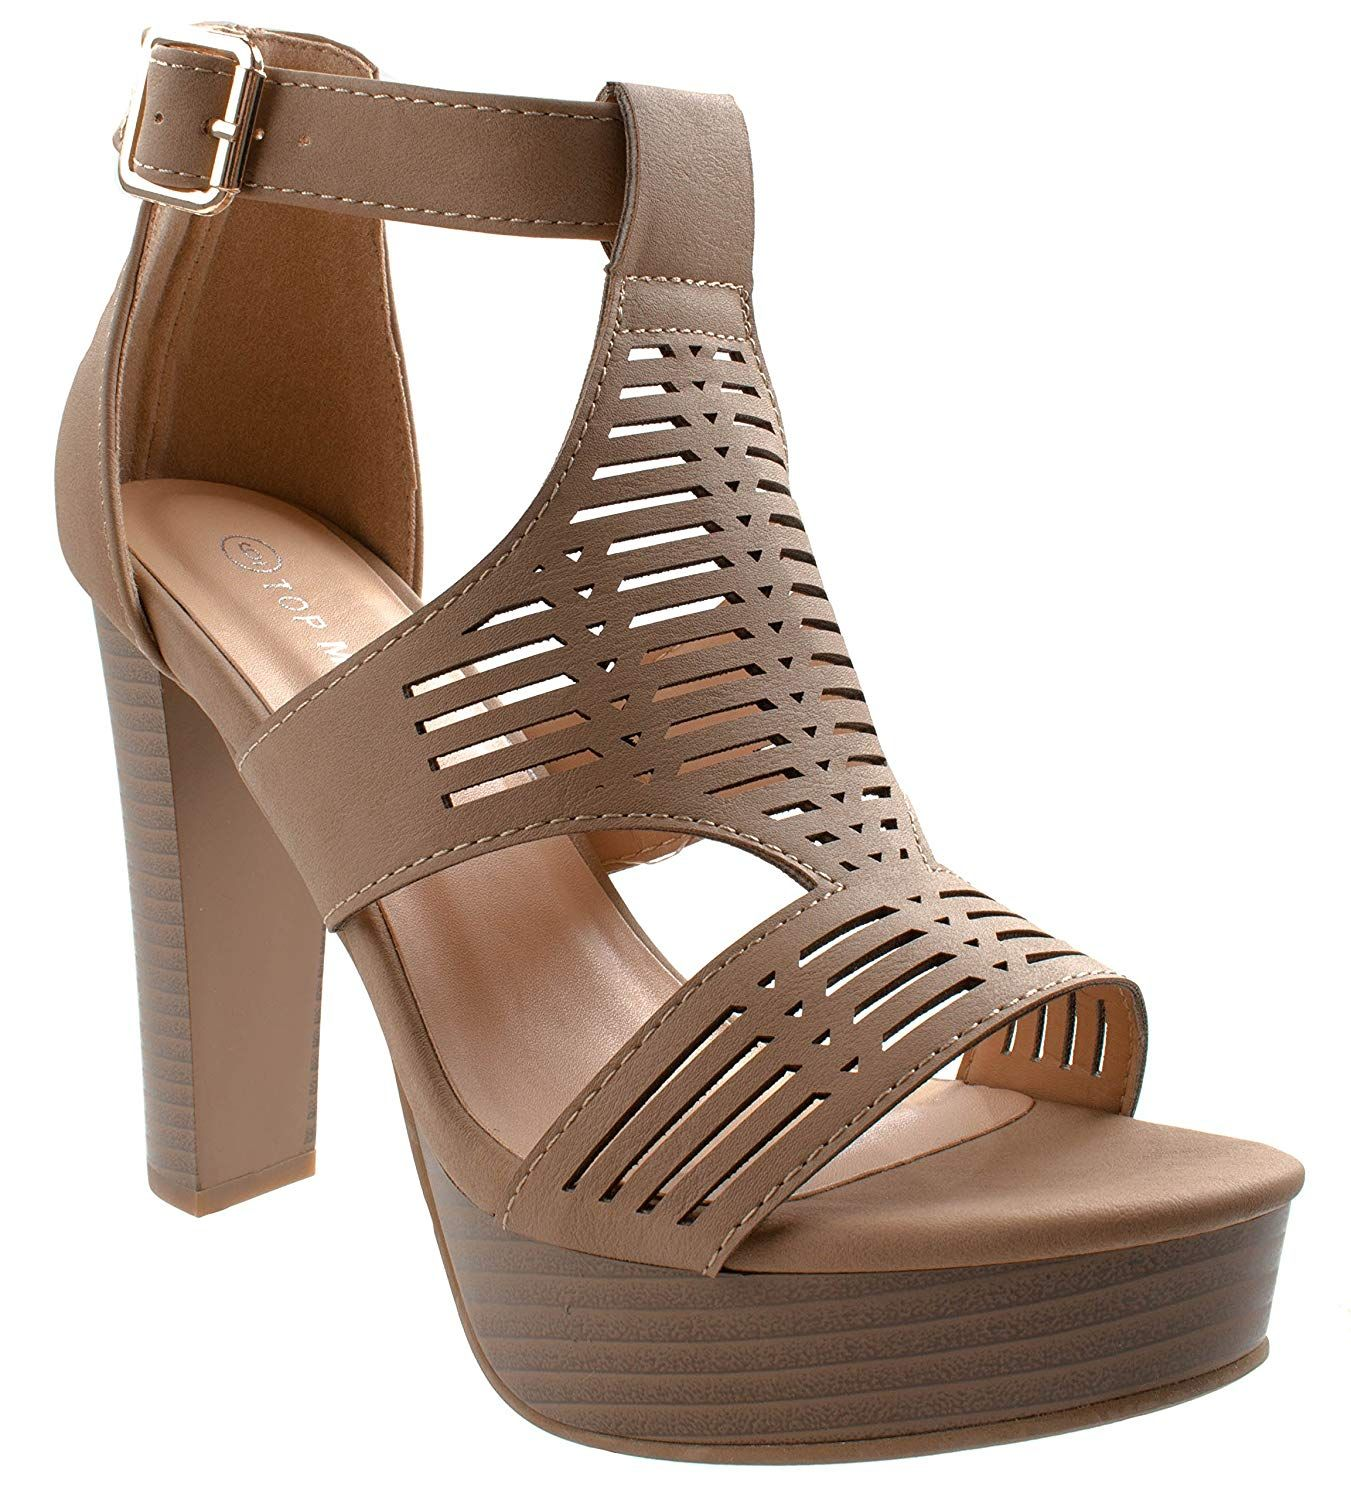 4b05a8aff6f3c Asushoes Women's Top Moda Thomas-50 Gladiator Caged Cutout Open Toe ...